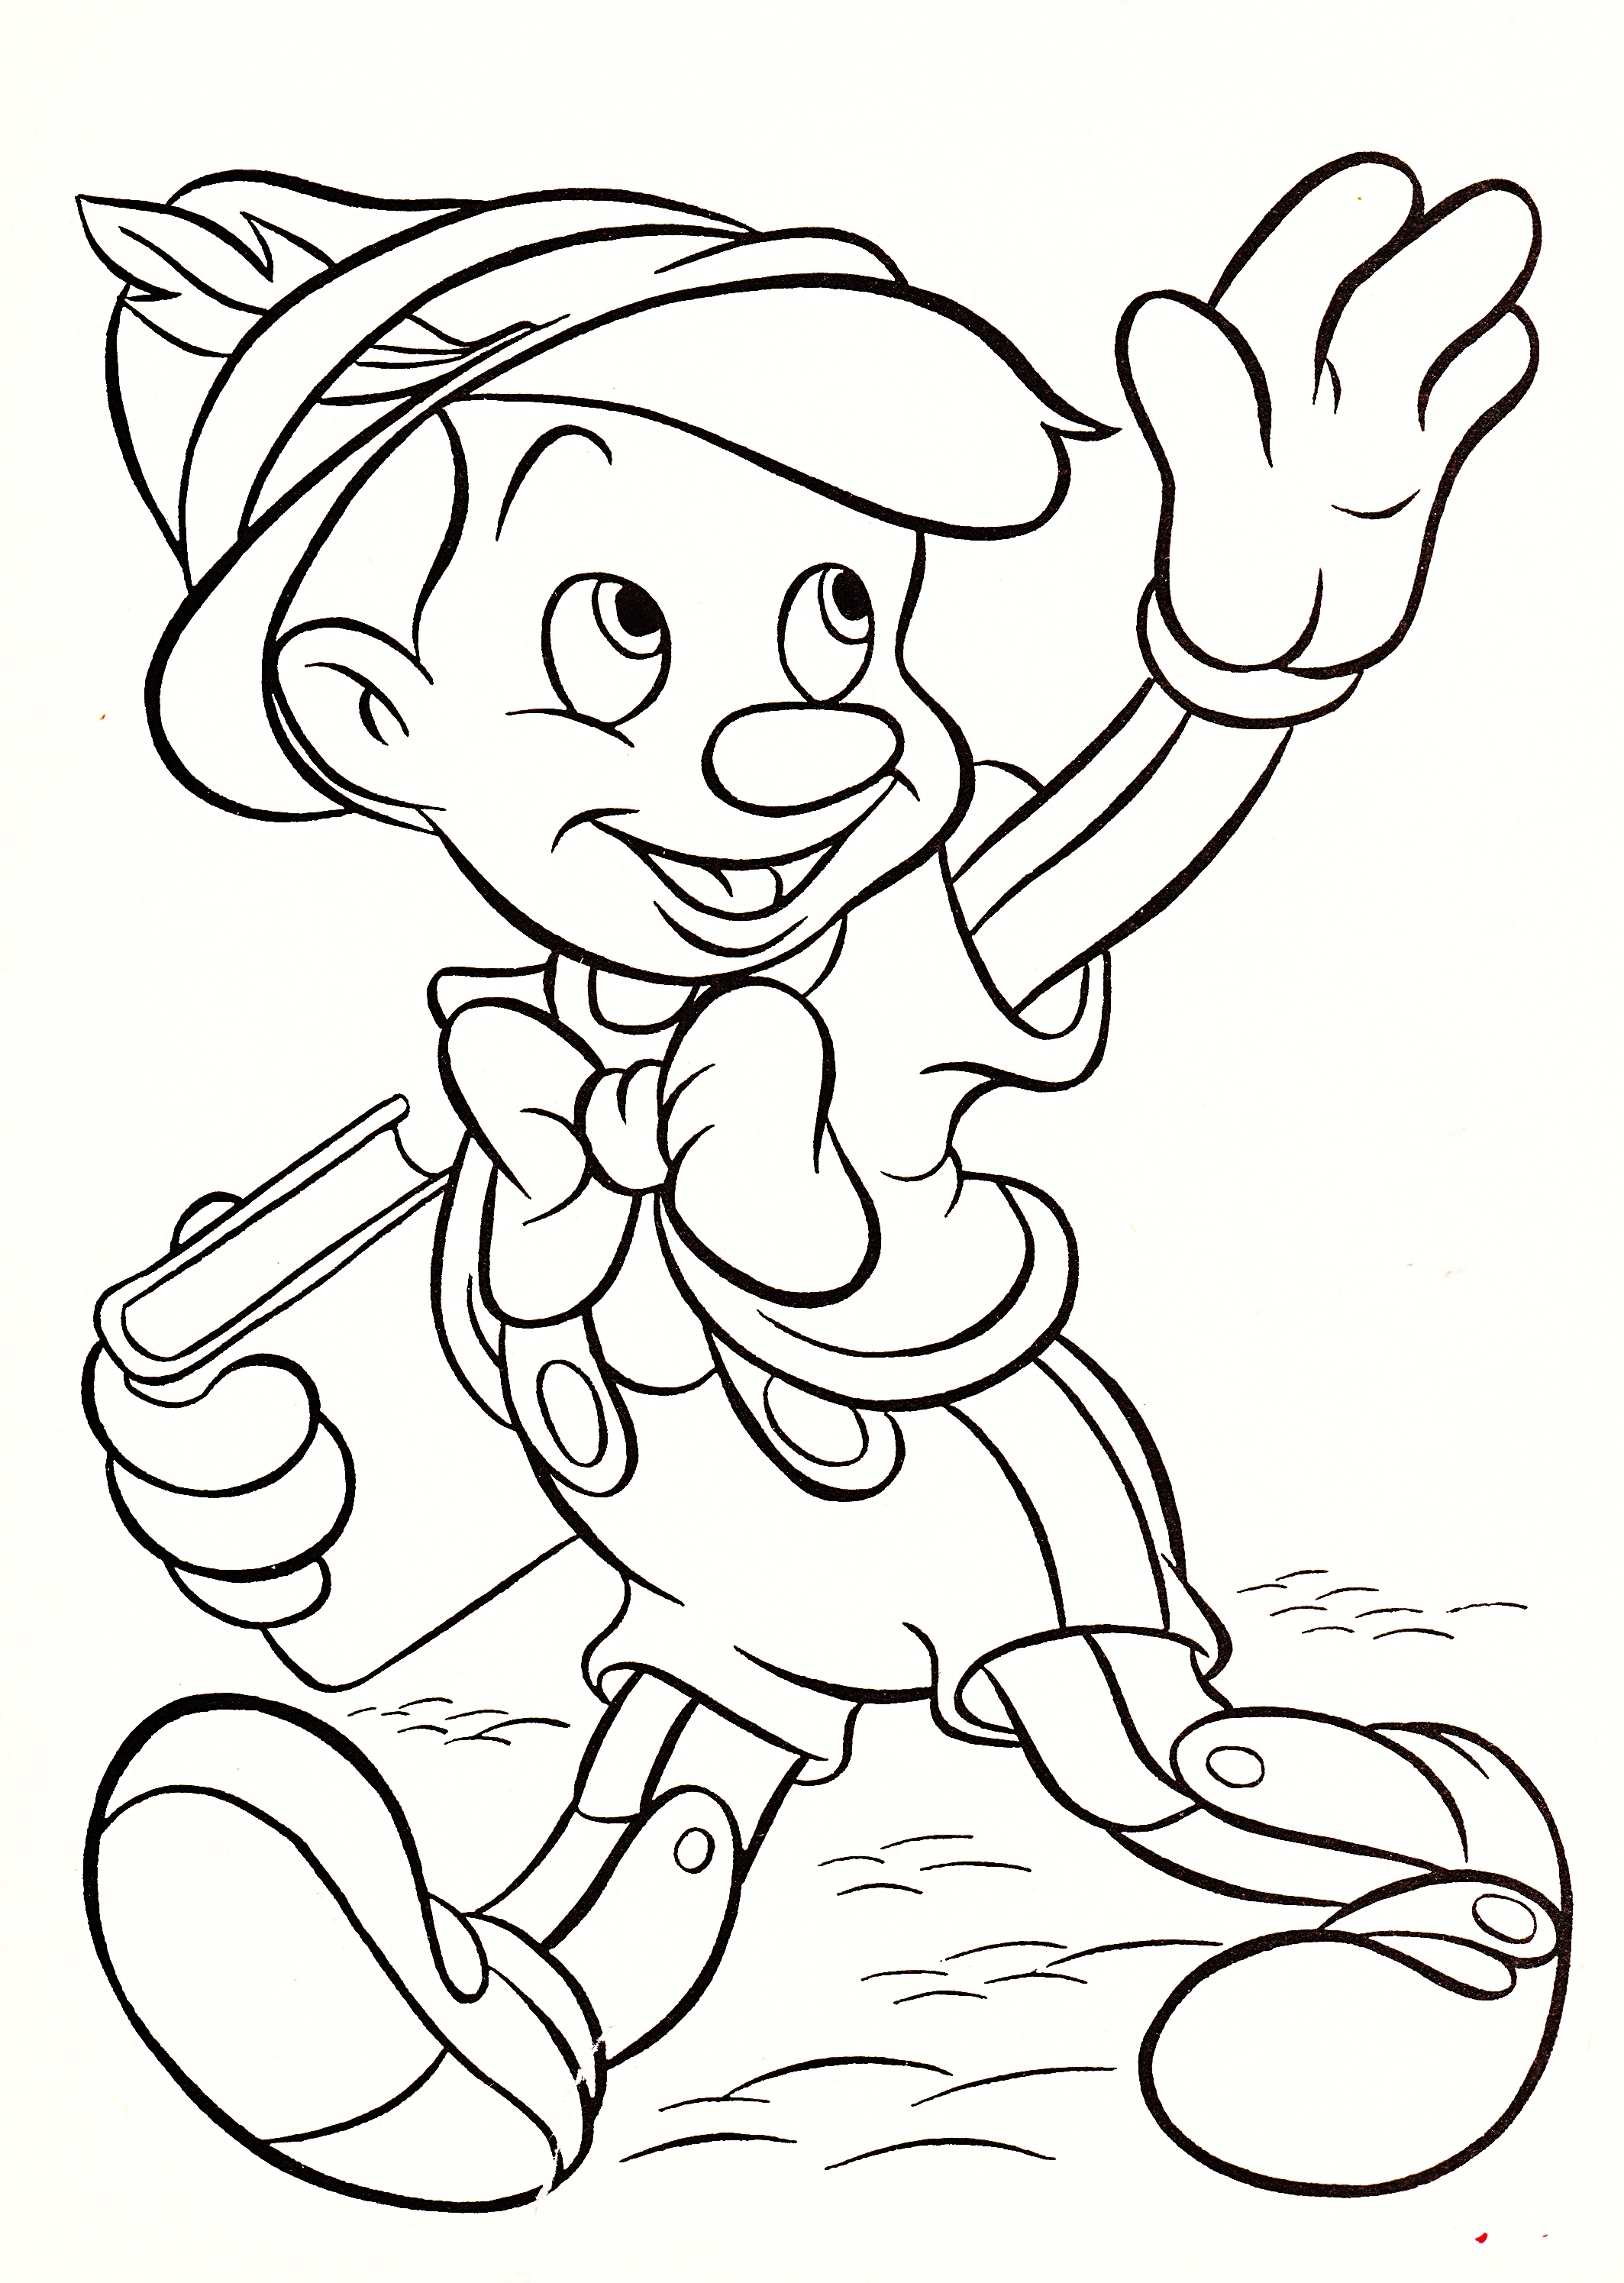 760 Www.disney Coloring Pages.com Pictures